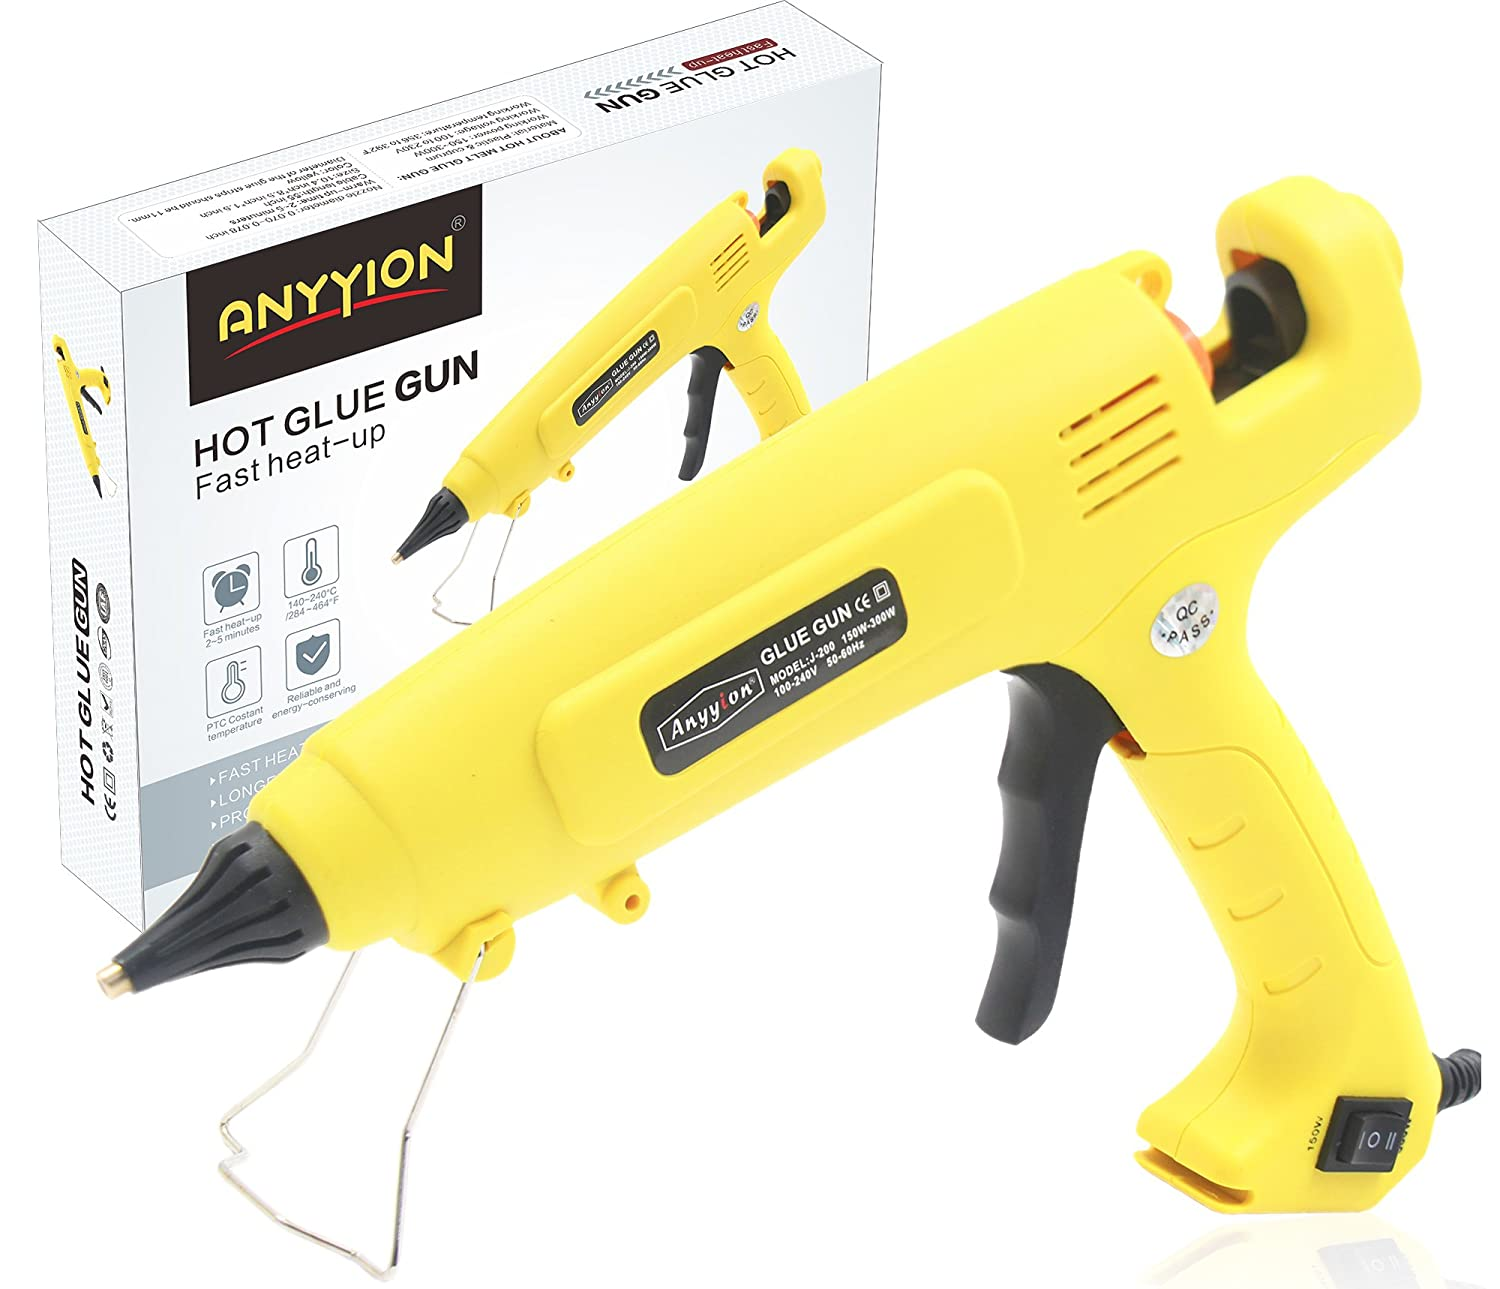 AI 300 Watt Hot Glue Gun ,High Output Professional Adjustable Switch High Temperature Industrial Adhesive Hot Melt Glue Guns ; Yellow Anyyion 4336847608